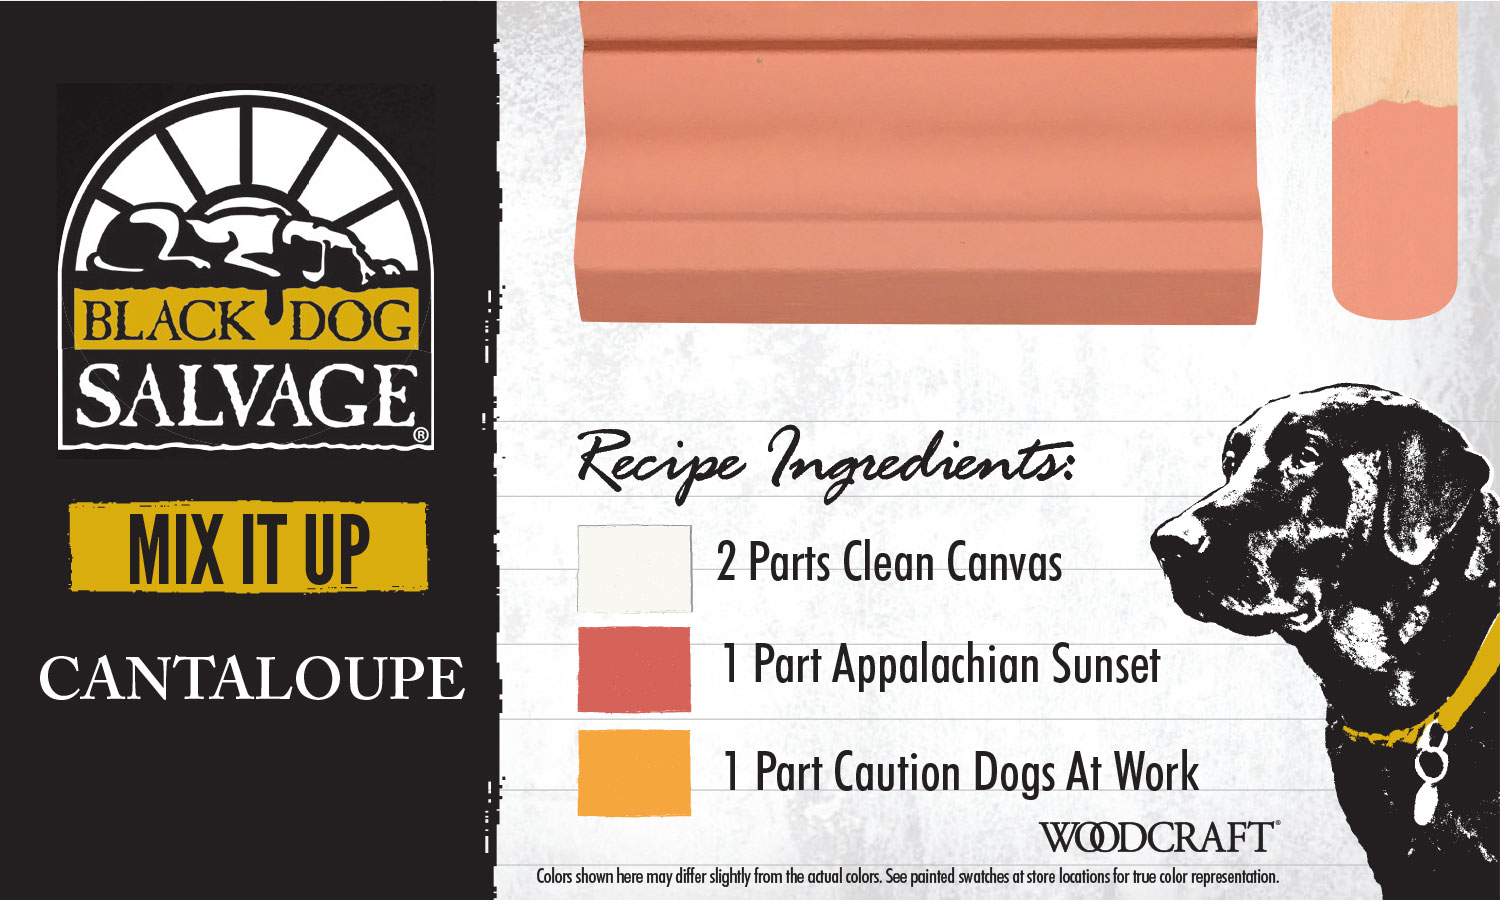 """""""Cantaloupe"""" is made from2 Parts """"Clean Canvas,"""" 1 Part """"Appalachian Sunset,"""" and 1 Part """"Caution: Dogs At Work"""""""